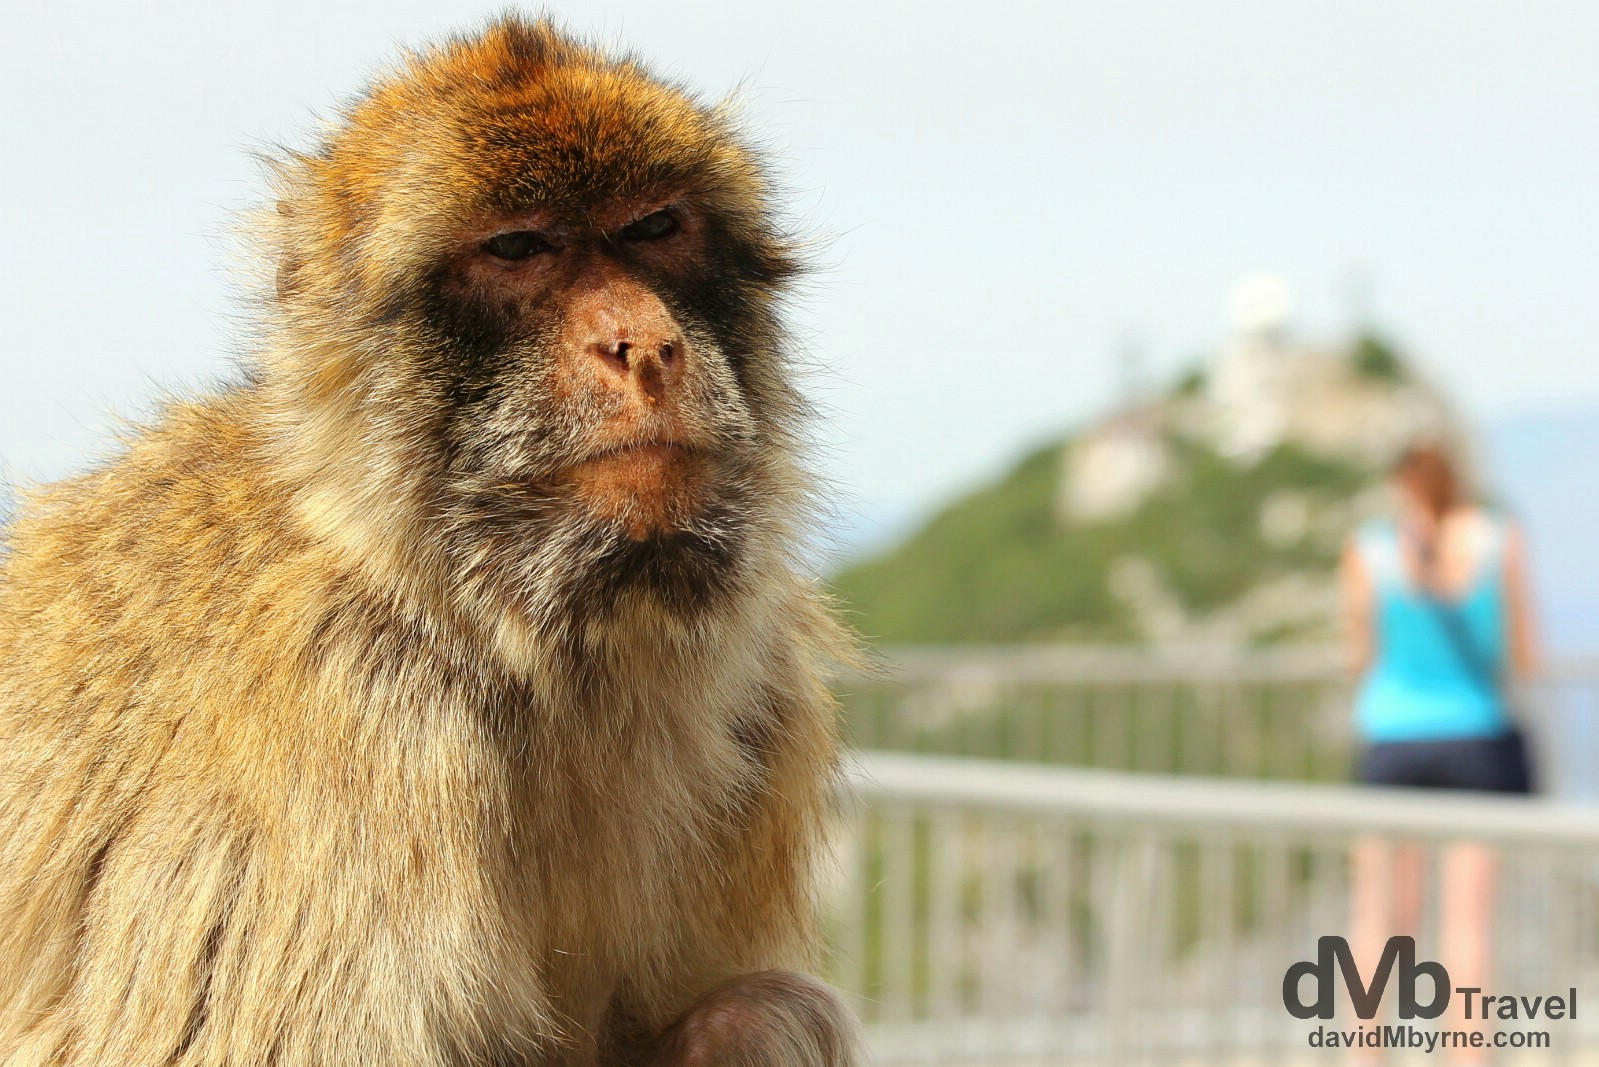 A resident Macaque monkey at The Top of The Rock viewing deck in Gibraltar. June 5th, 2014.